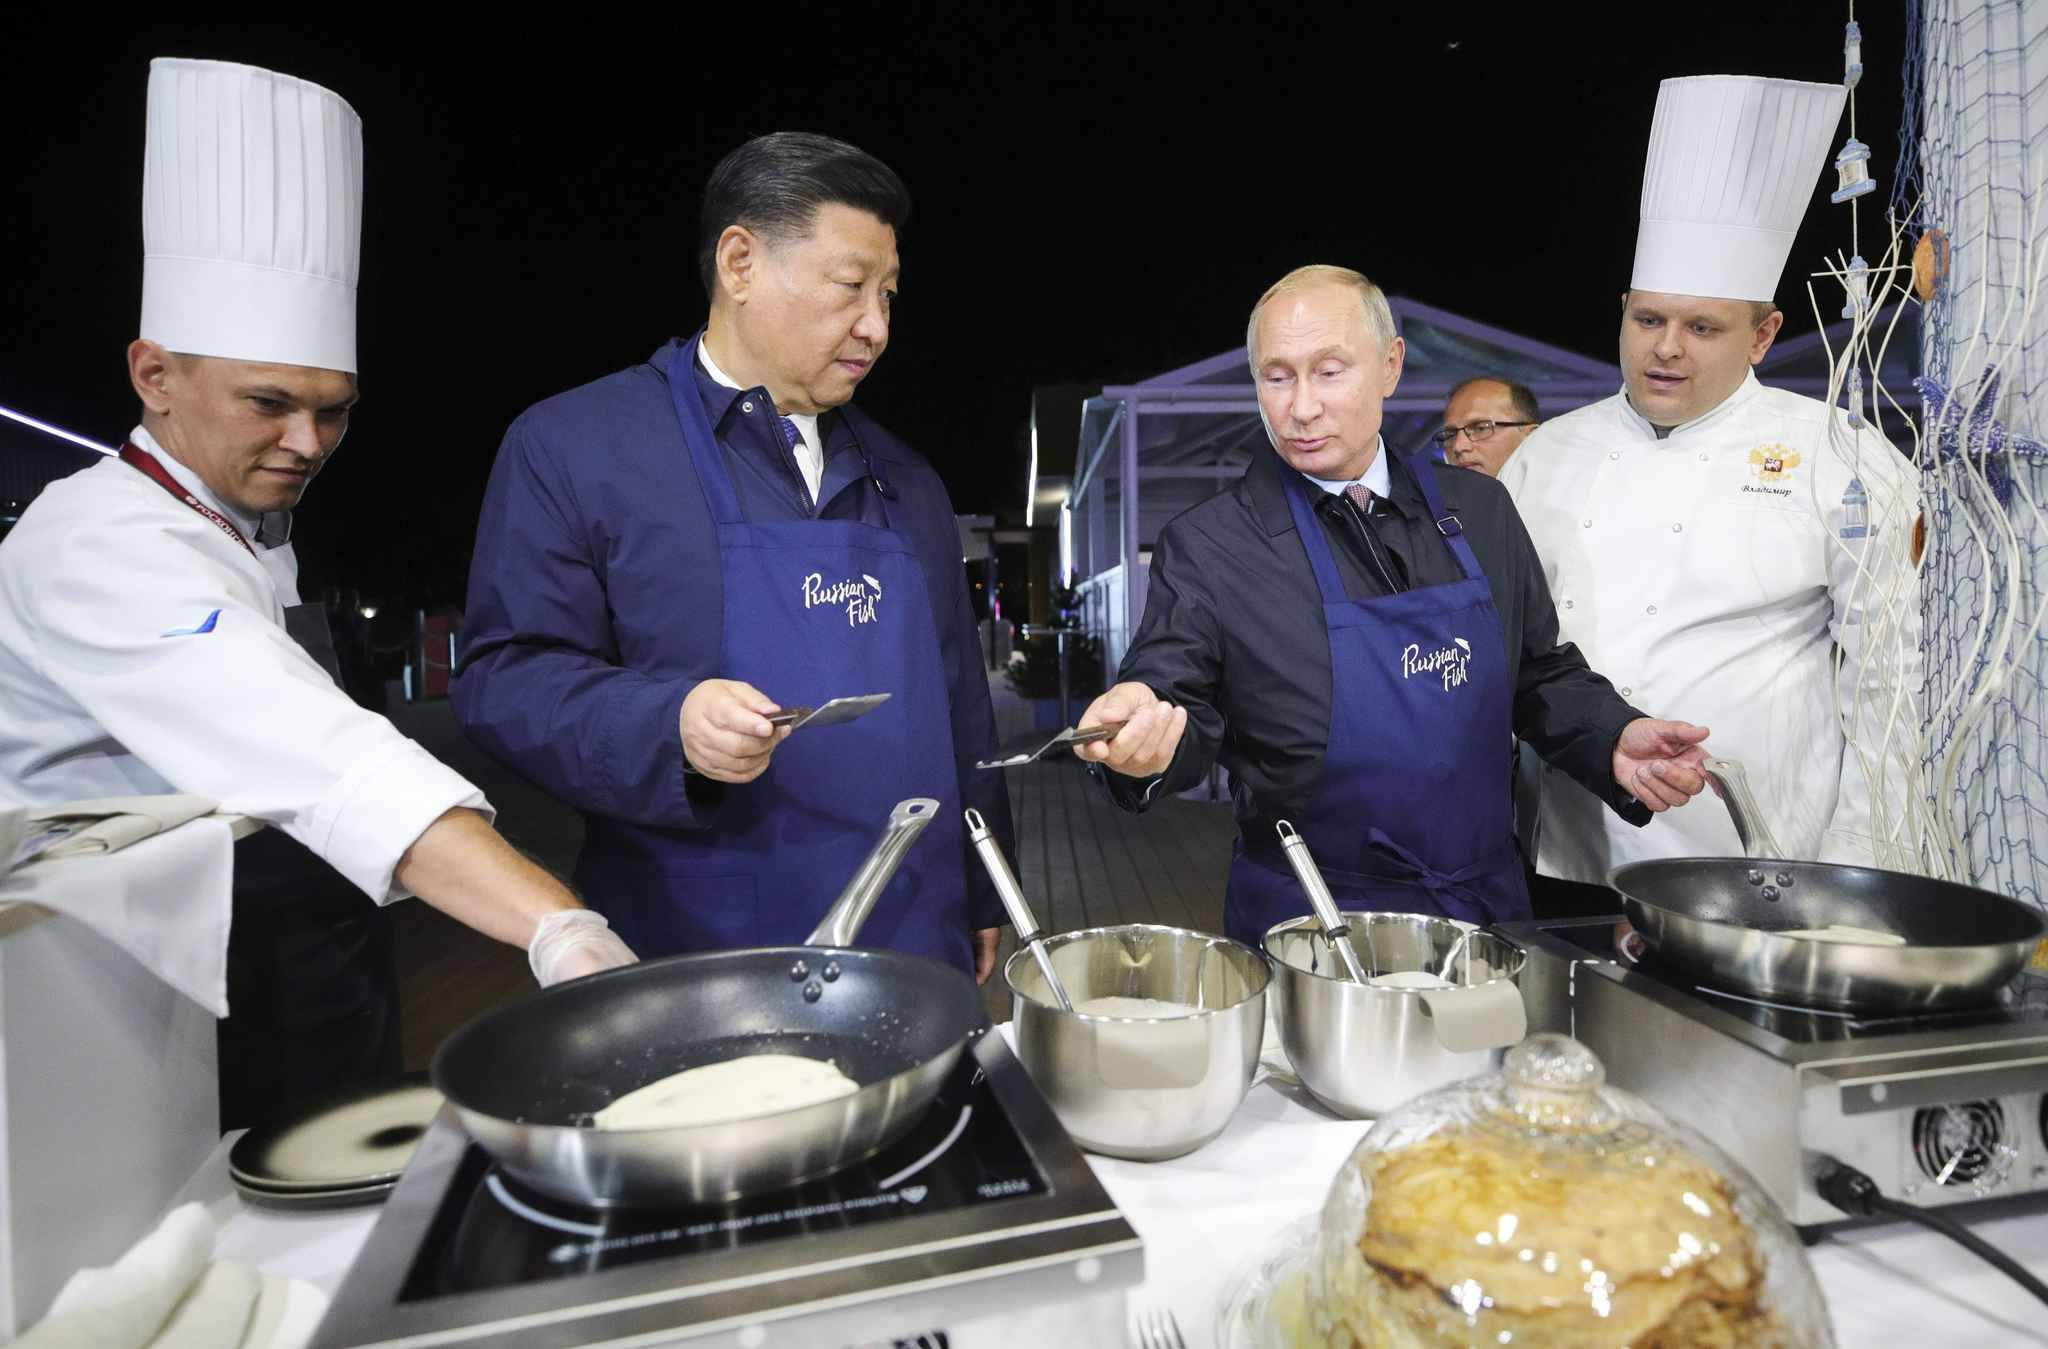 Chinese President Xi Jinping, second left, and Russian President Vladimir Putin, prepare food as they visit an exhibition during the Eastern Economic Forum in Vladivostok, Russia, Tuesday, Sept. 11, 2018.